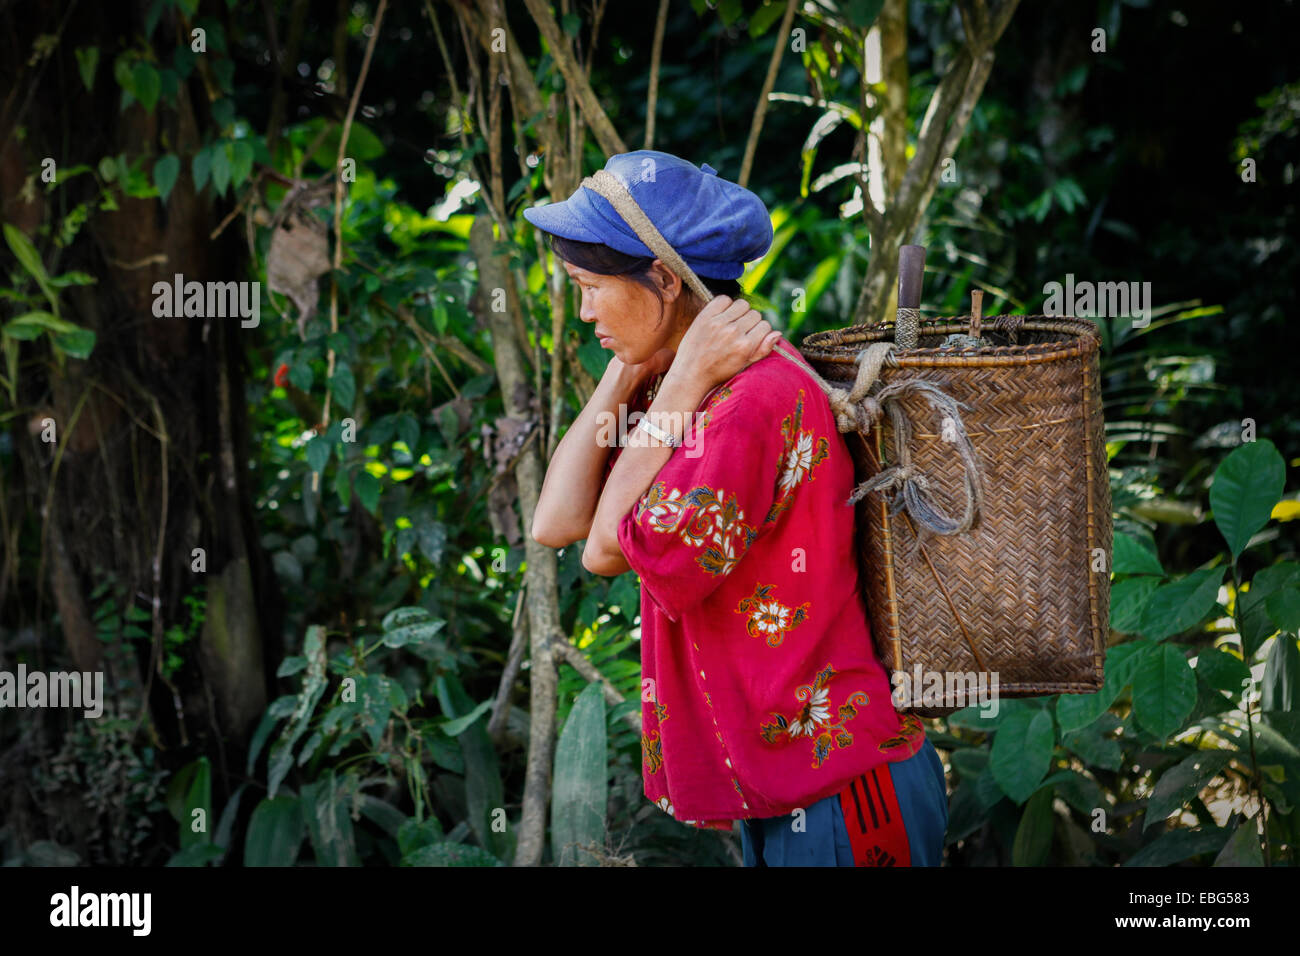 A Dayak woman carries her farming equipments on a rattan basket. © Reynold Sumayku - Stock Image